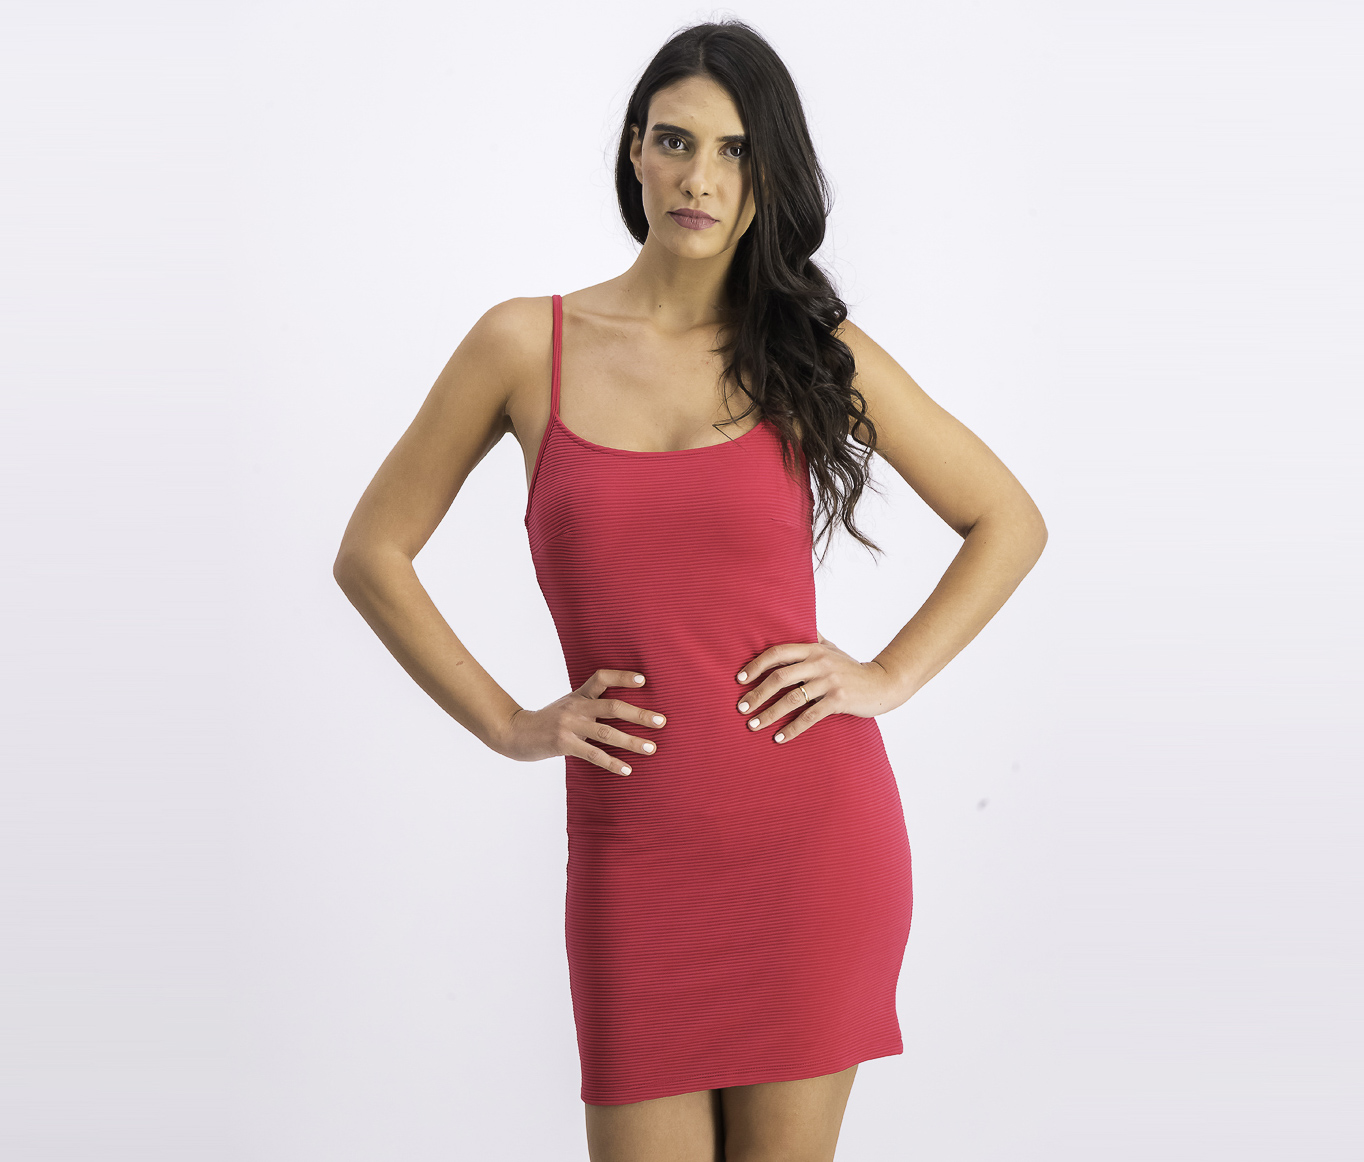 Women's Sleeveless Bodycon Dress, Fuchsia